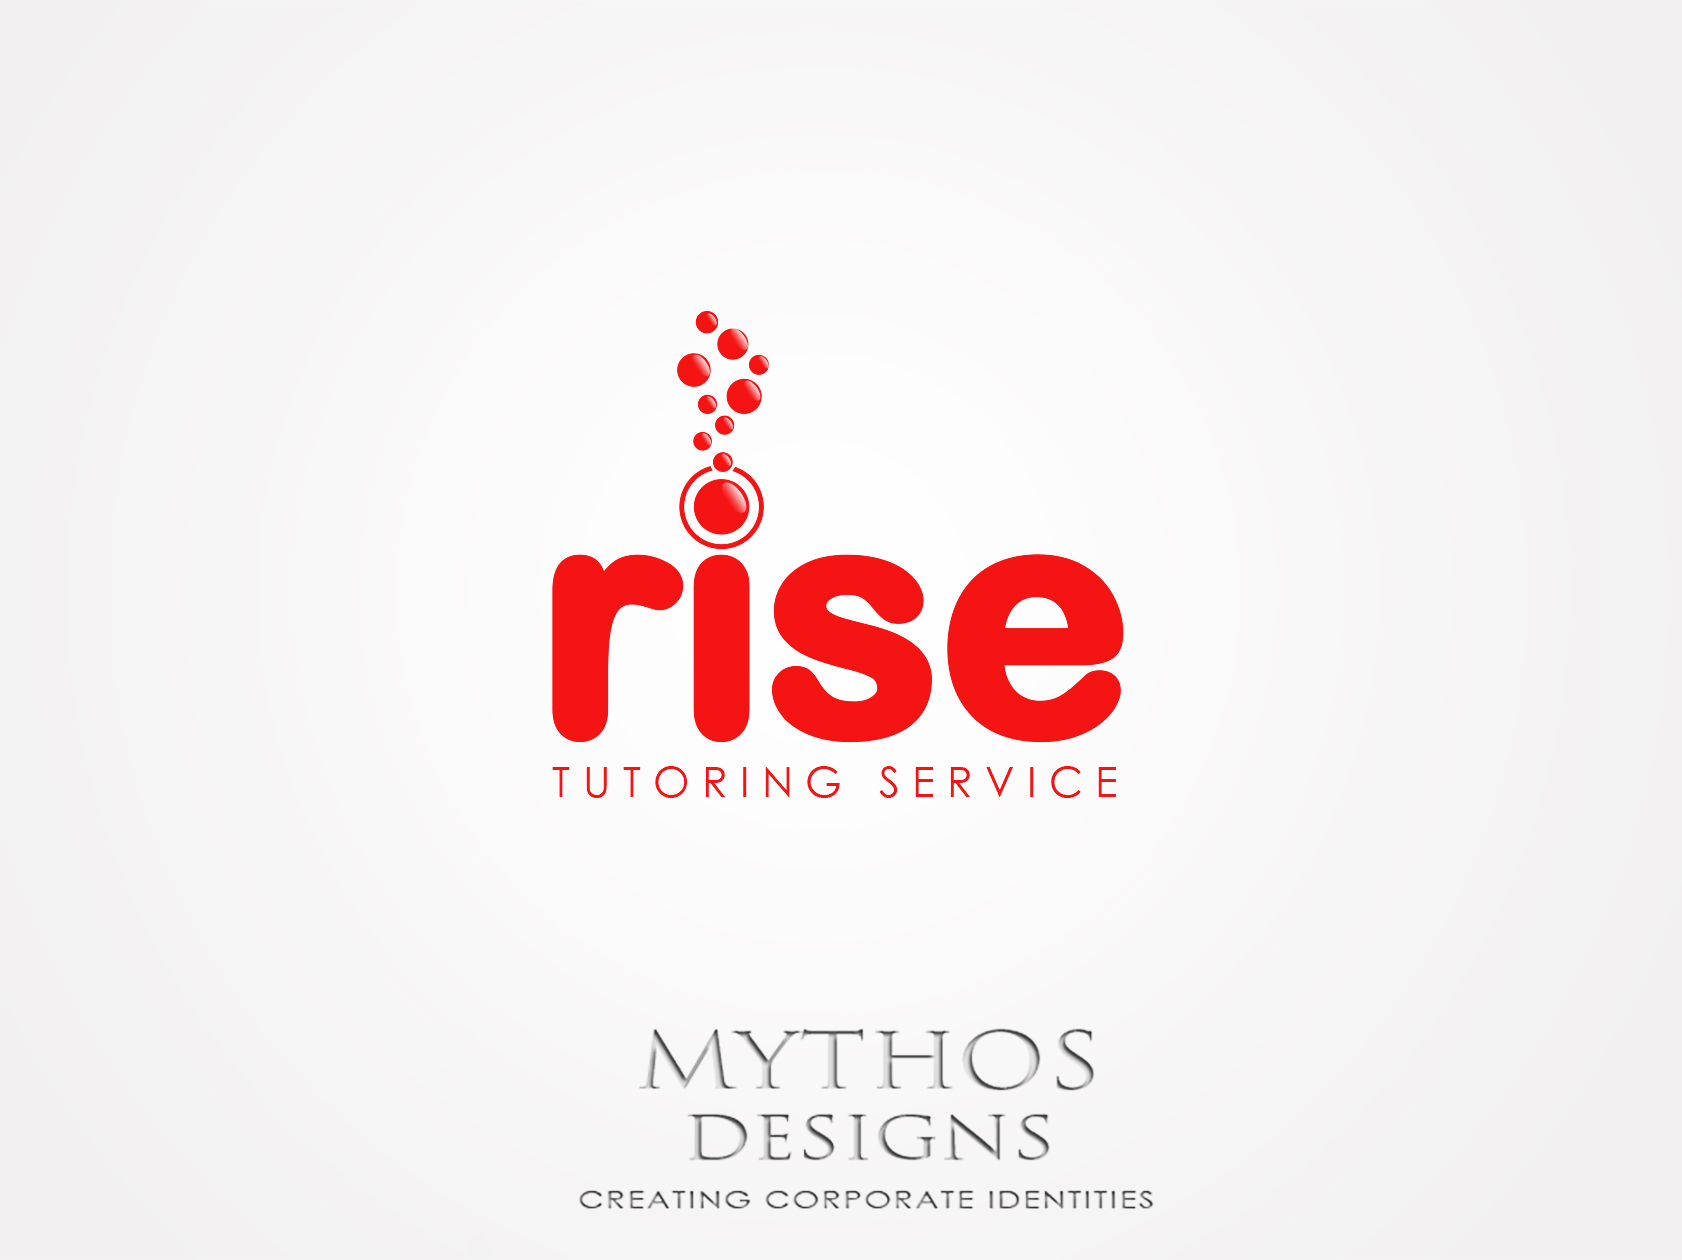 Logo Design by Mythos Designs - Entry No. 245 in the Logo Design Contest Imaginative Logo Design for Rise Tutoring Service.